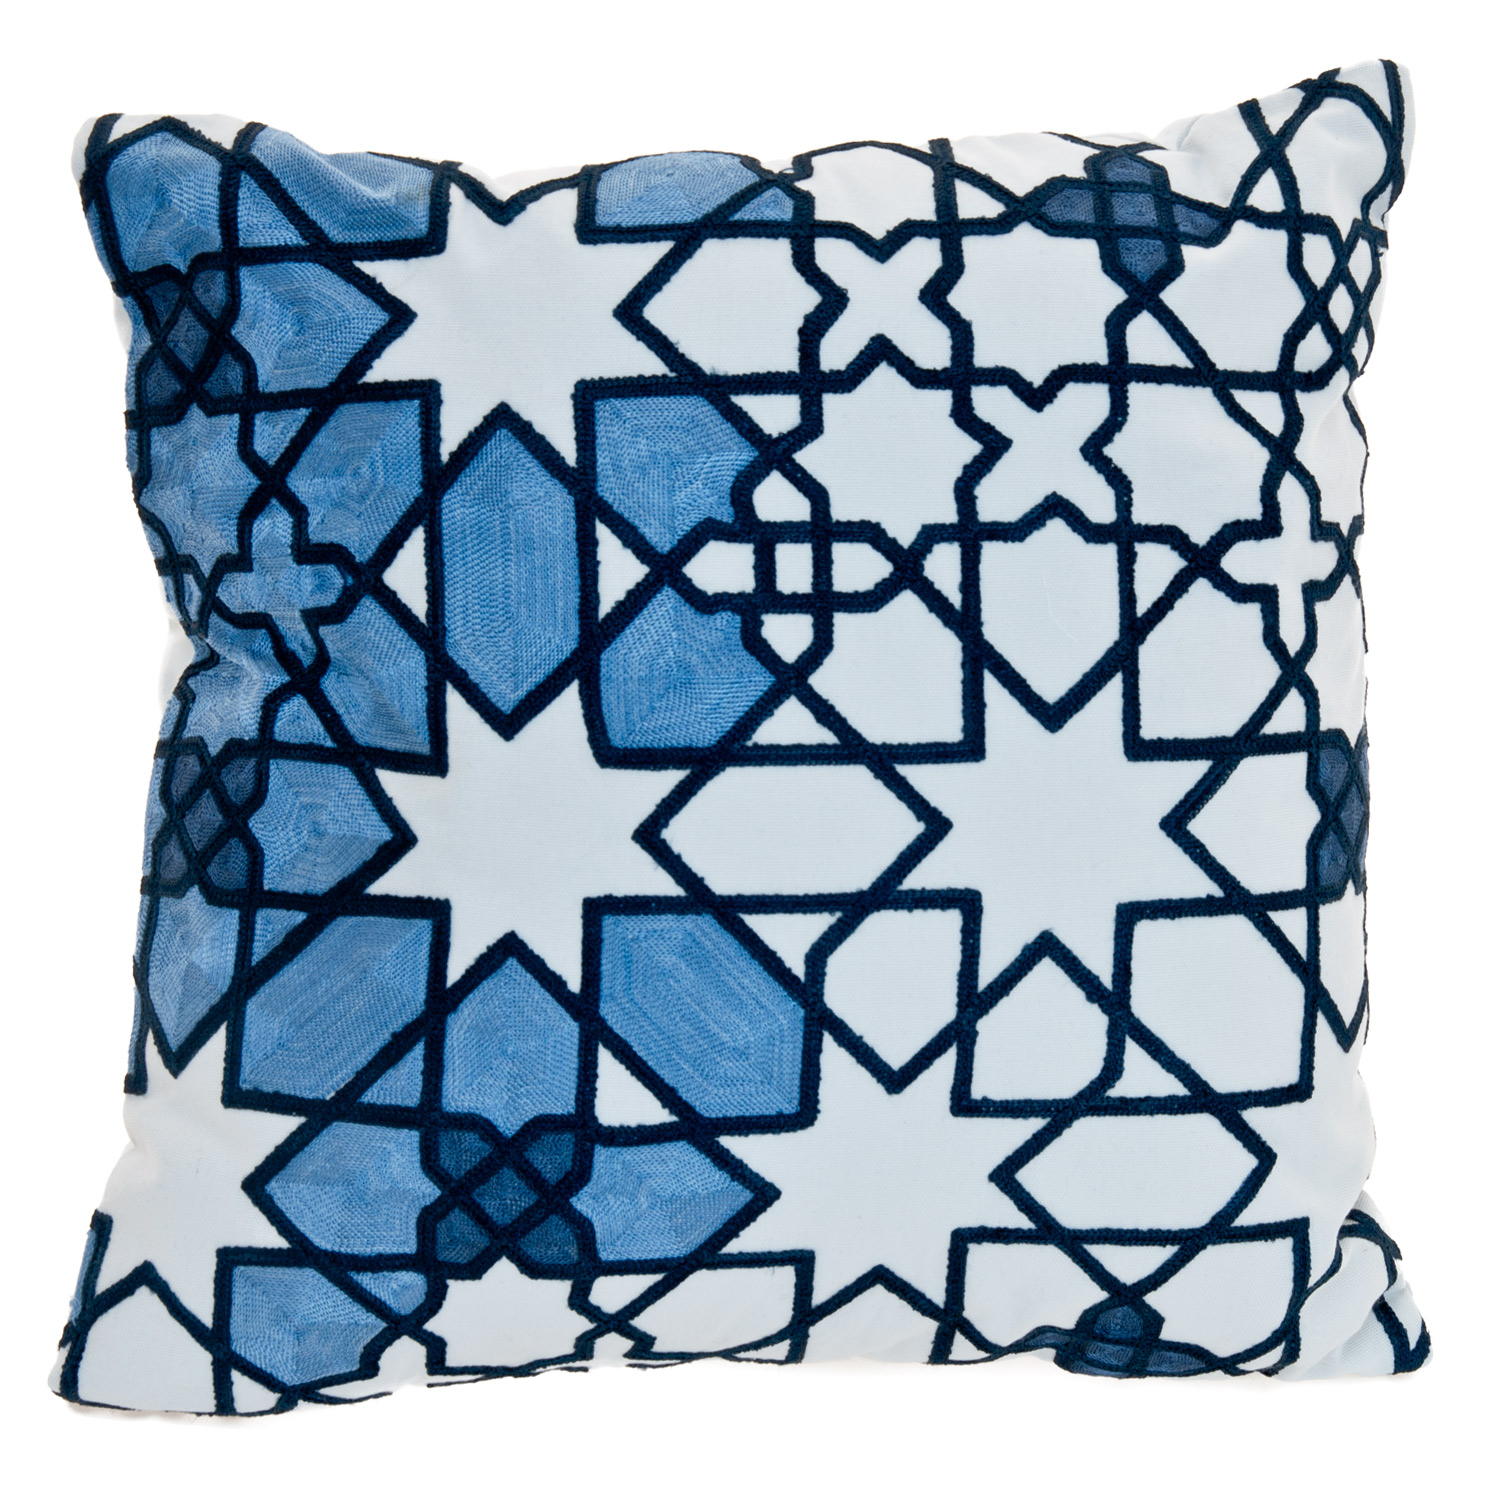 Image of Casa Moroccan Nights Star Cushion, Blue